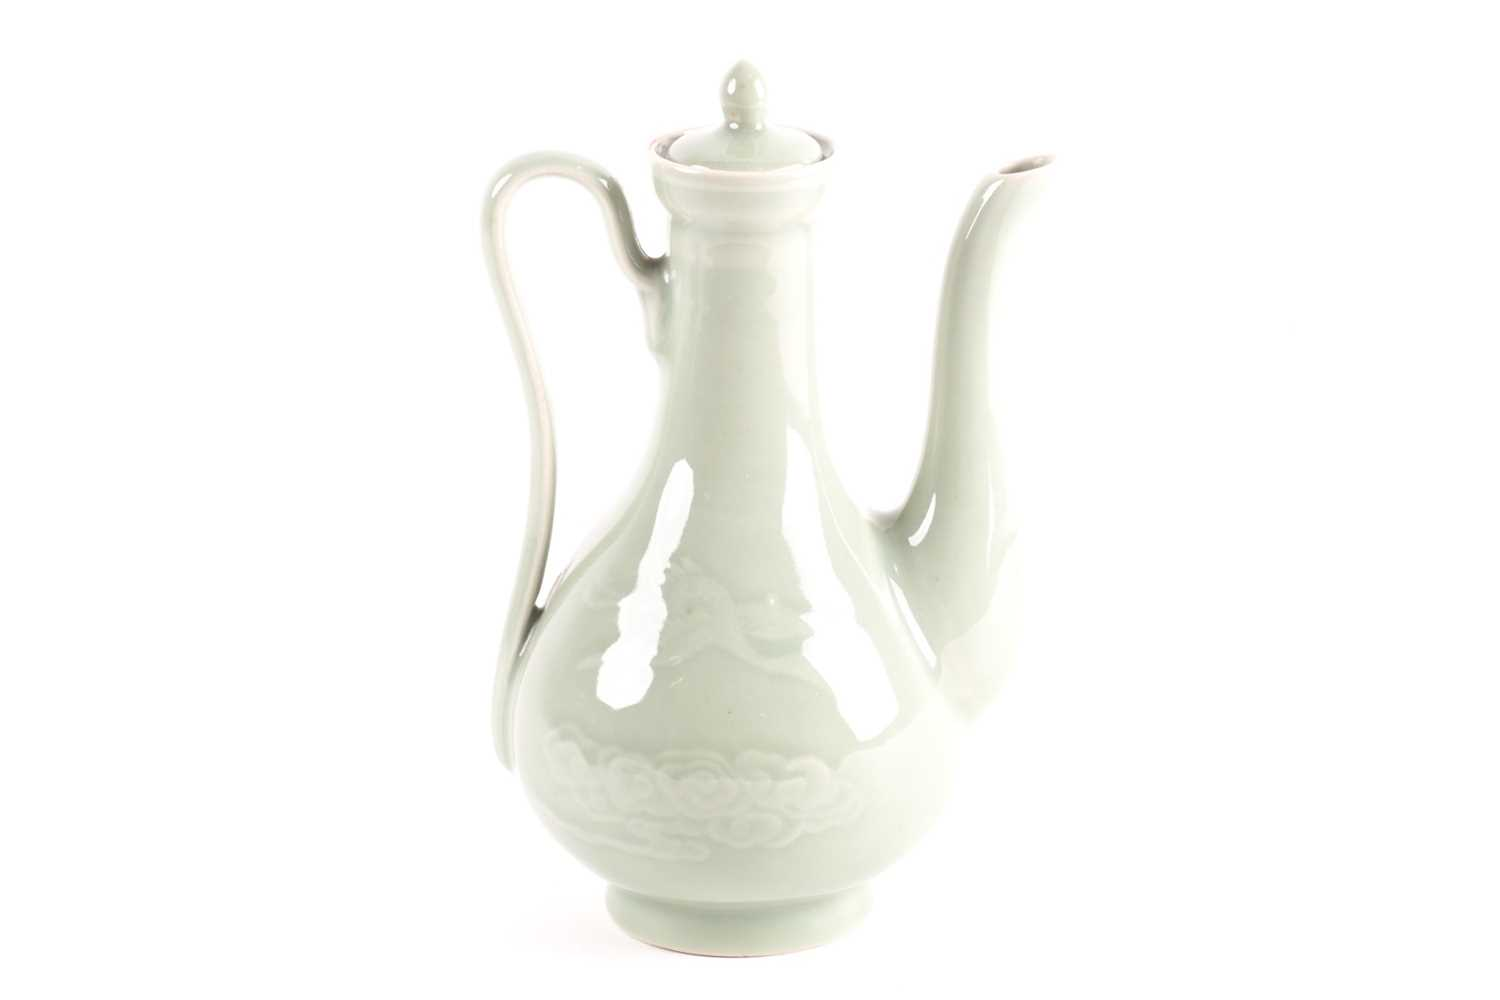 A Chinese celadon wine ewer, modelled in the Persian style, the long stopper with ball knop, moulded